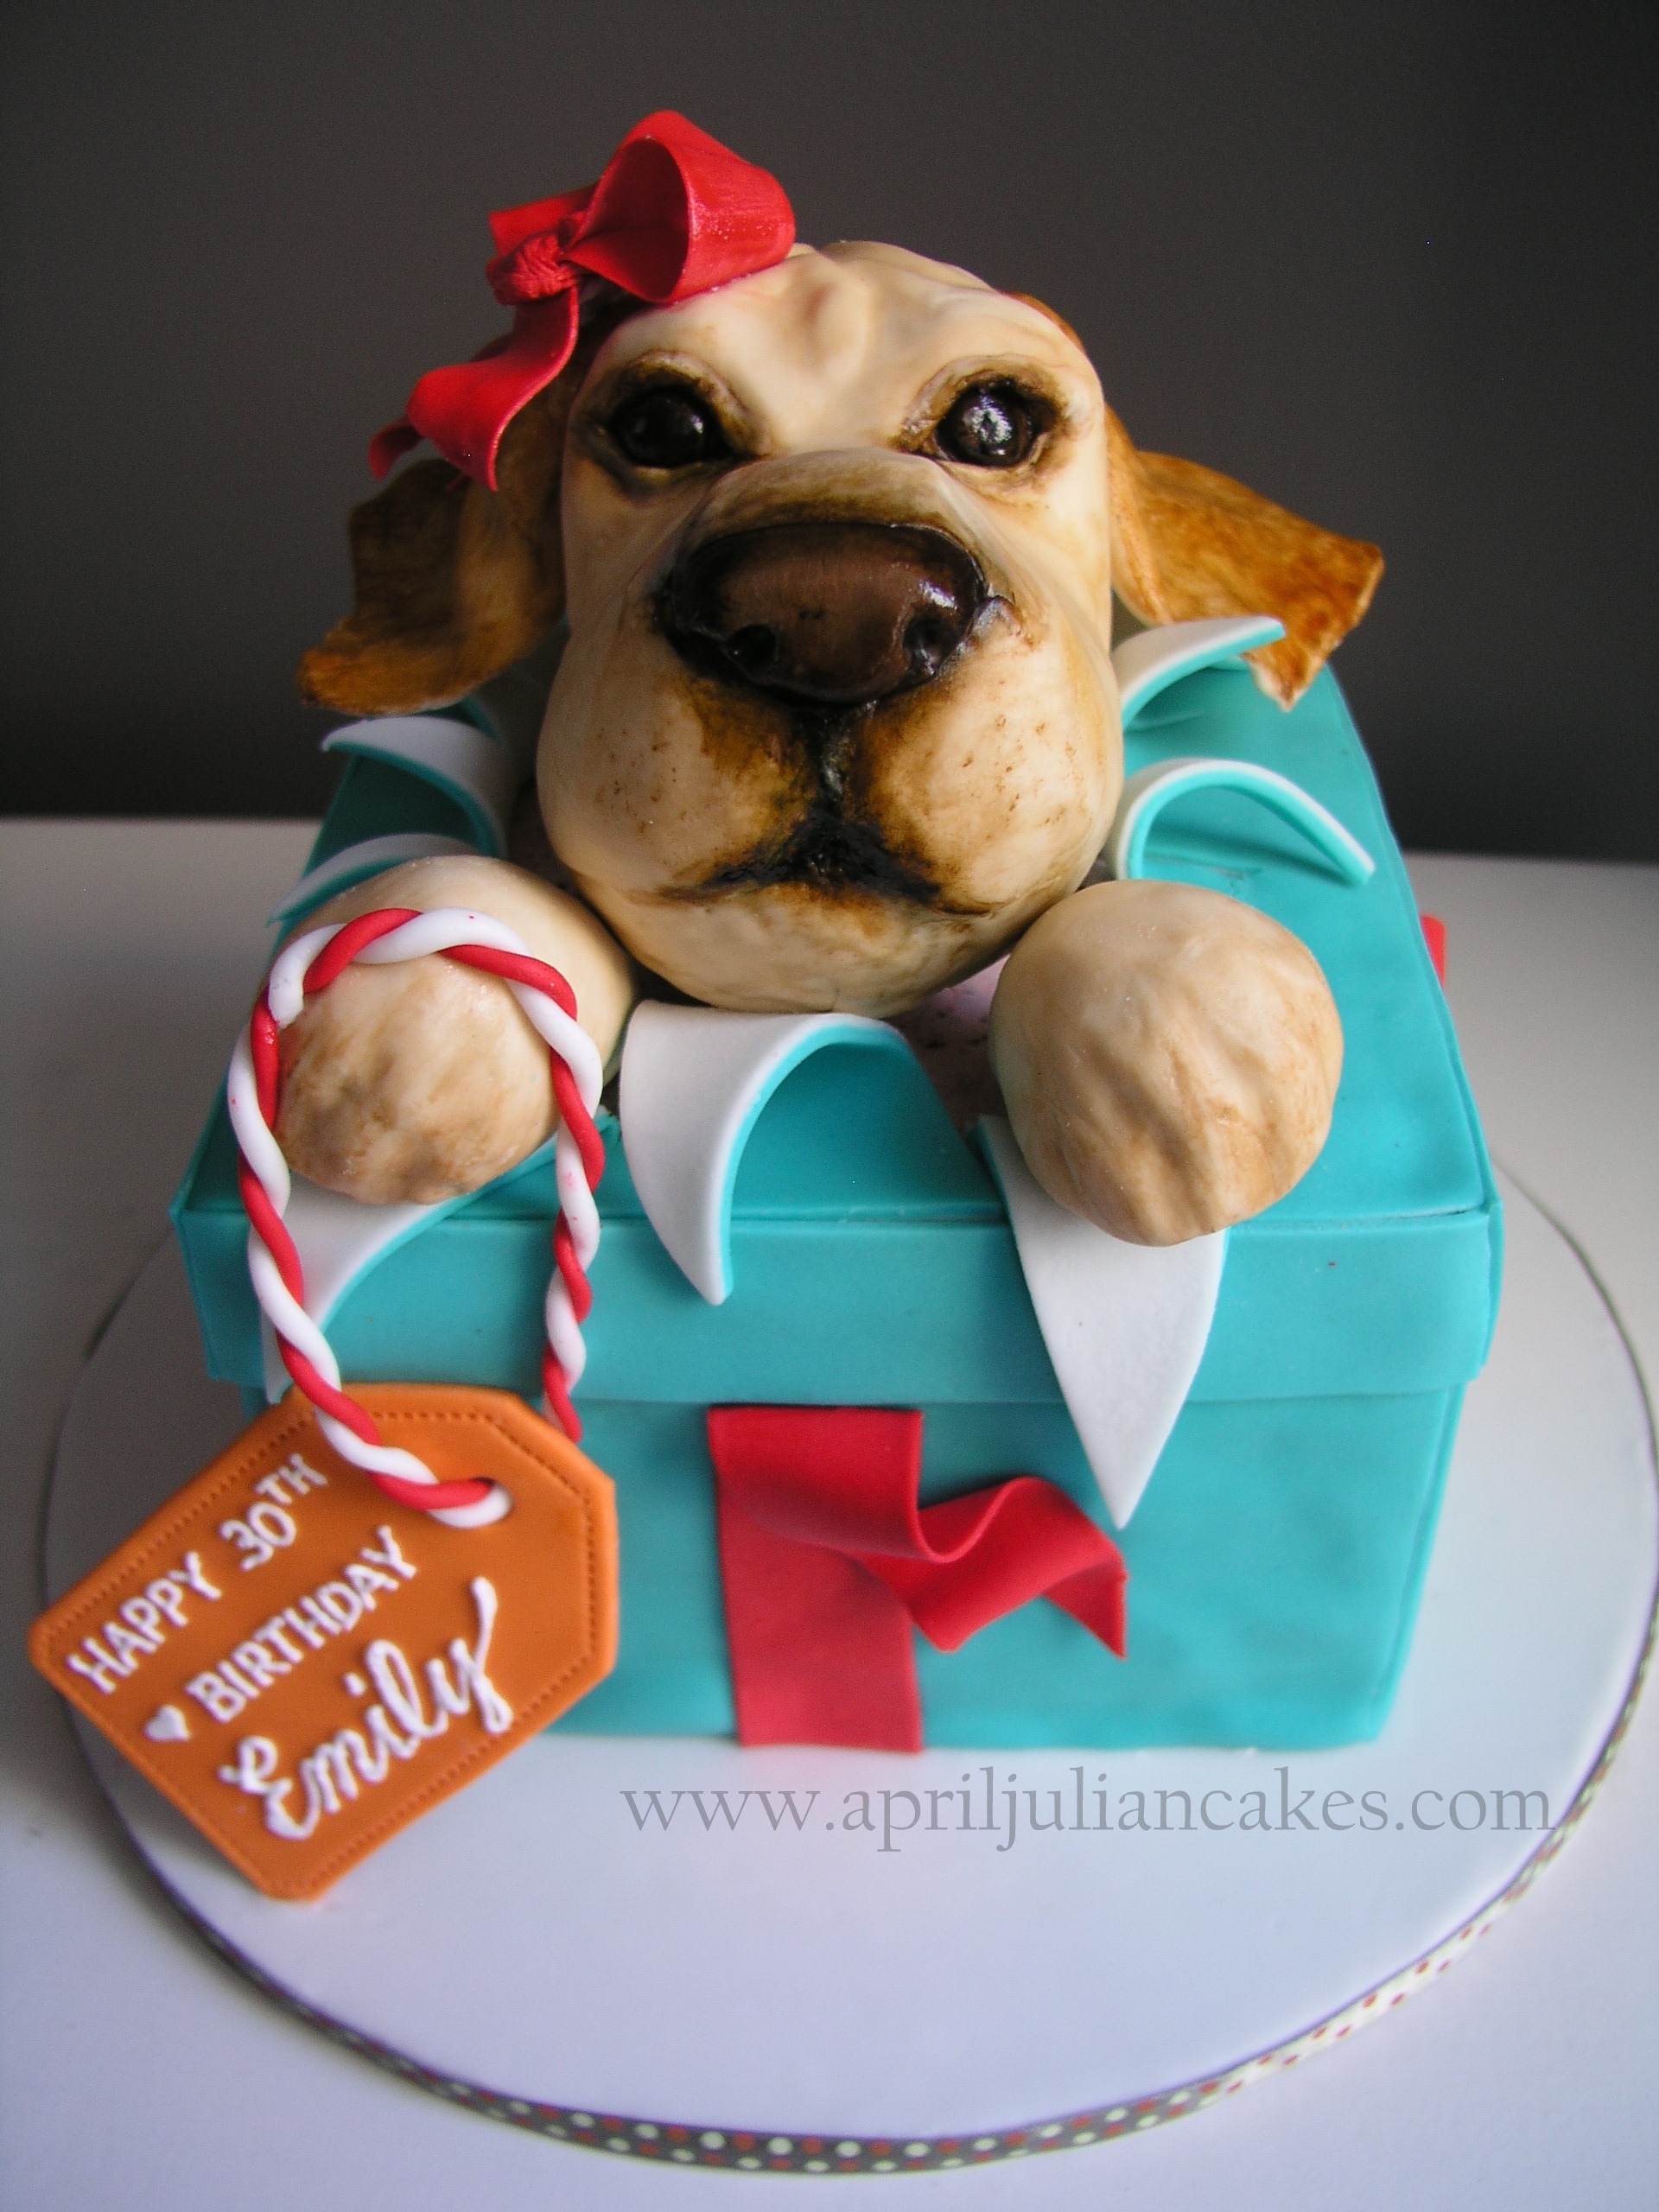 Birthday Cake For My Friend Emilys Big 3 0 She Recently Got A Rescue Dog Named Colby So I Recreated Her In RKT Is Chocolate With Raspberry SMBC